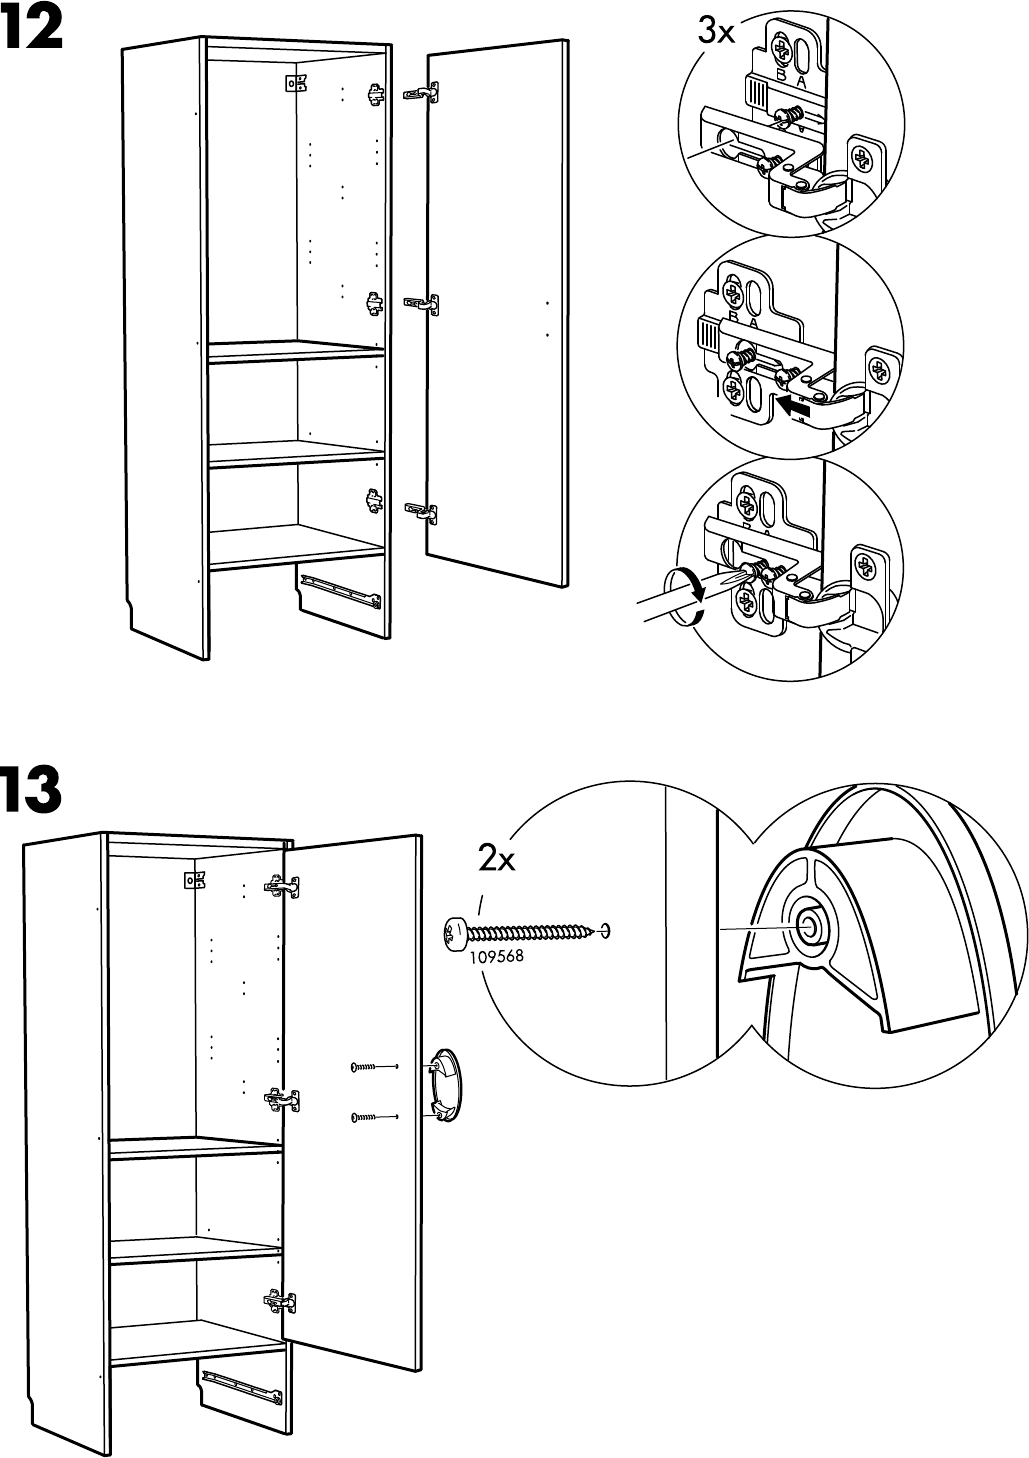 Ikea Hacks Kitchen Island On Wheels ~ Handleiding Ikea MAMMUT Garderobekast (pagina 17 van 28) (2,41 mb